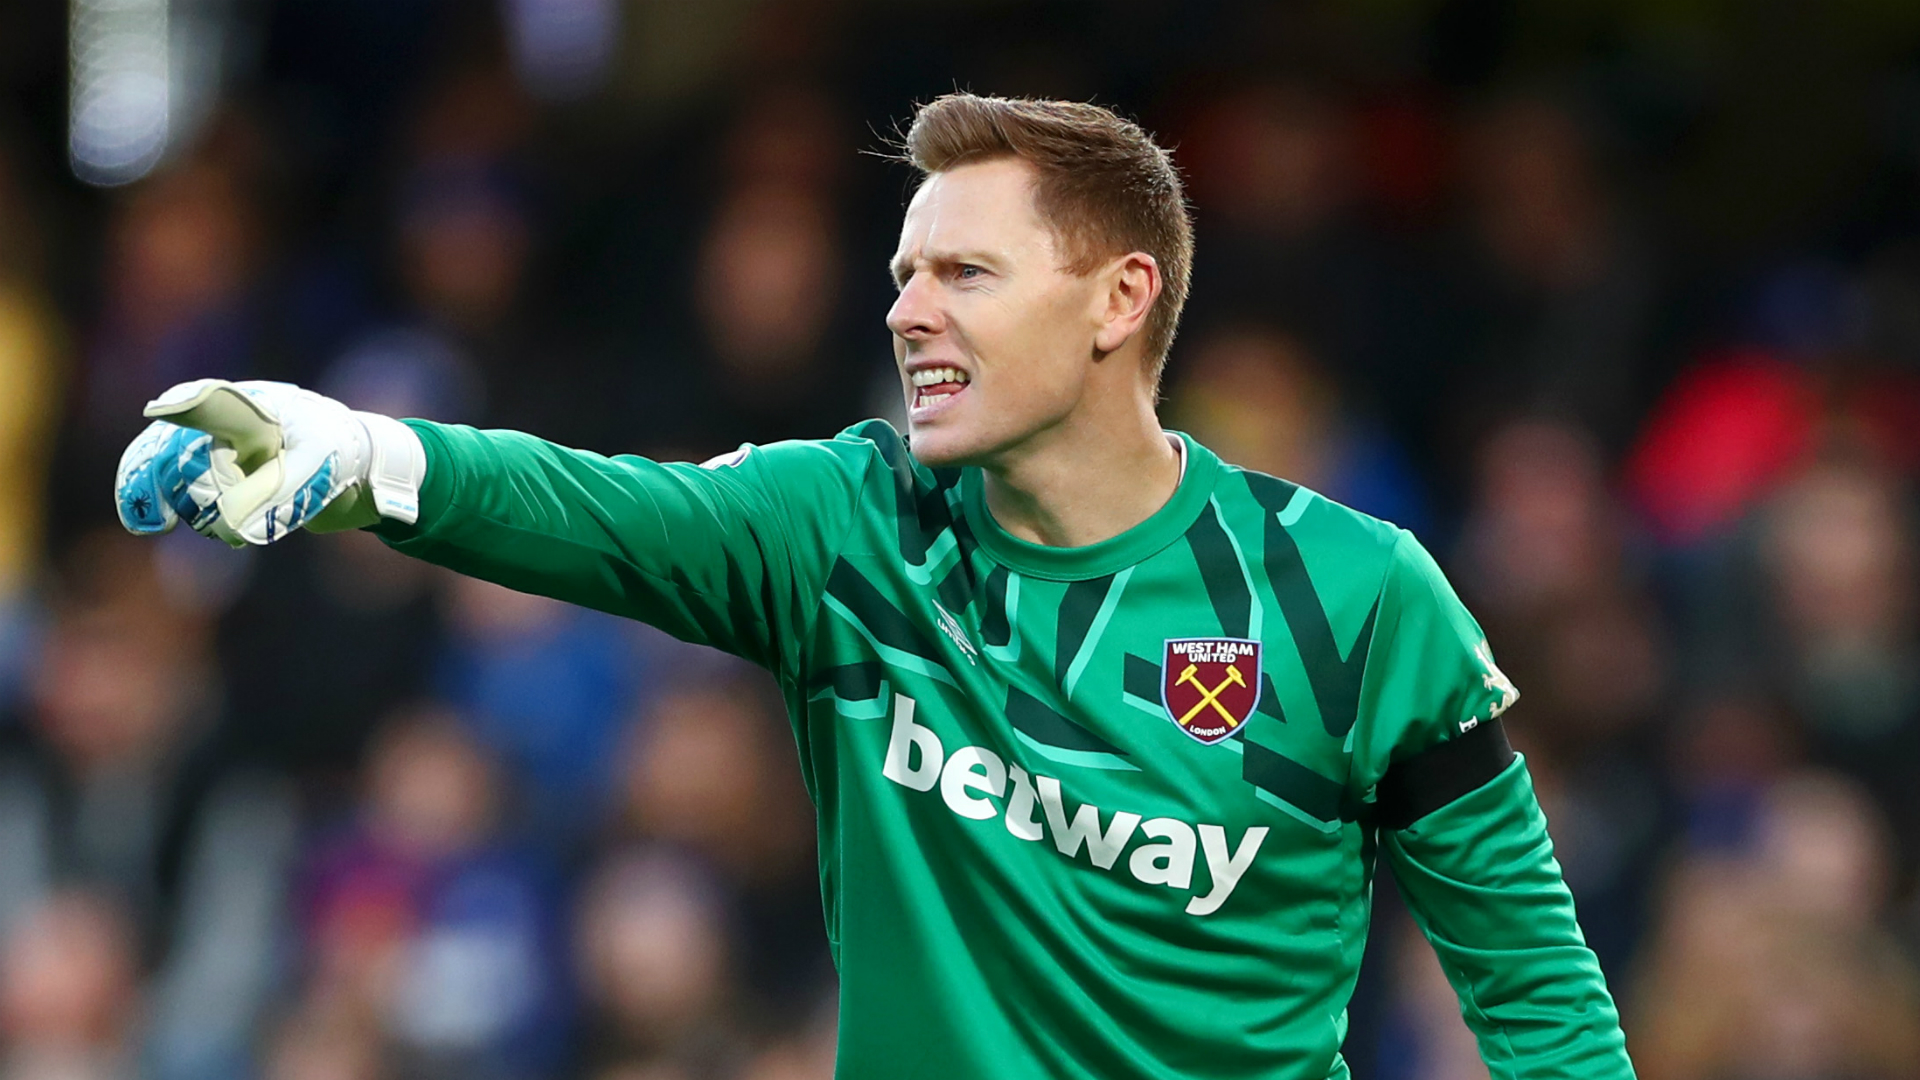 We were both in tears - Martin celebrates debut with West Ham legend dad